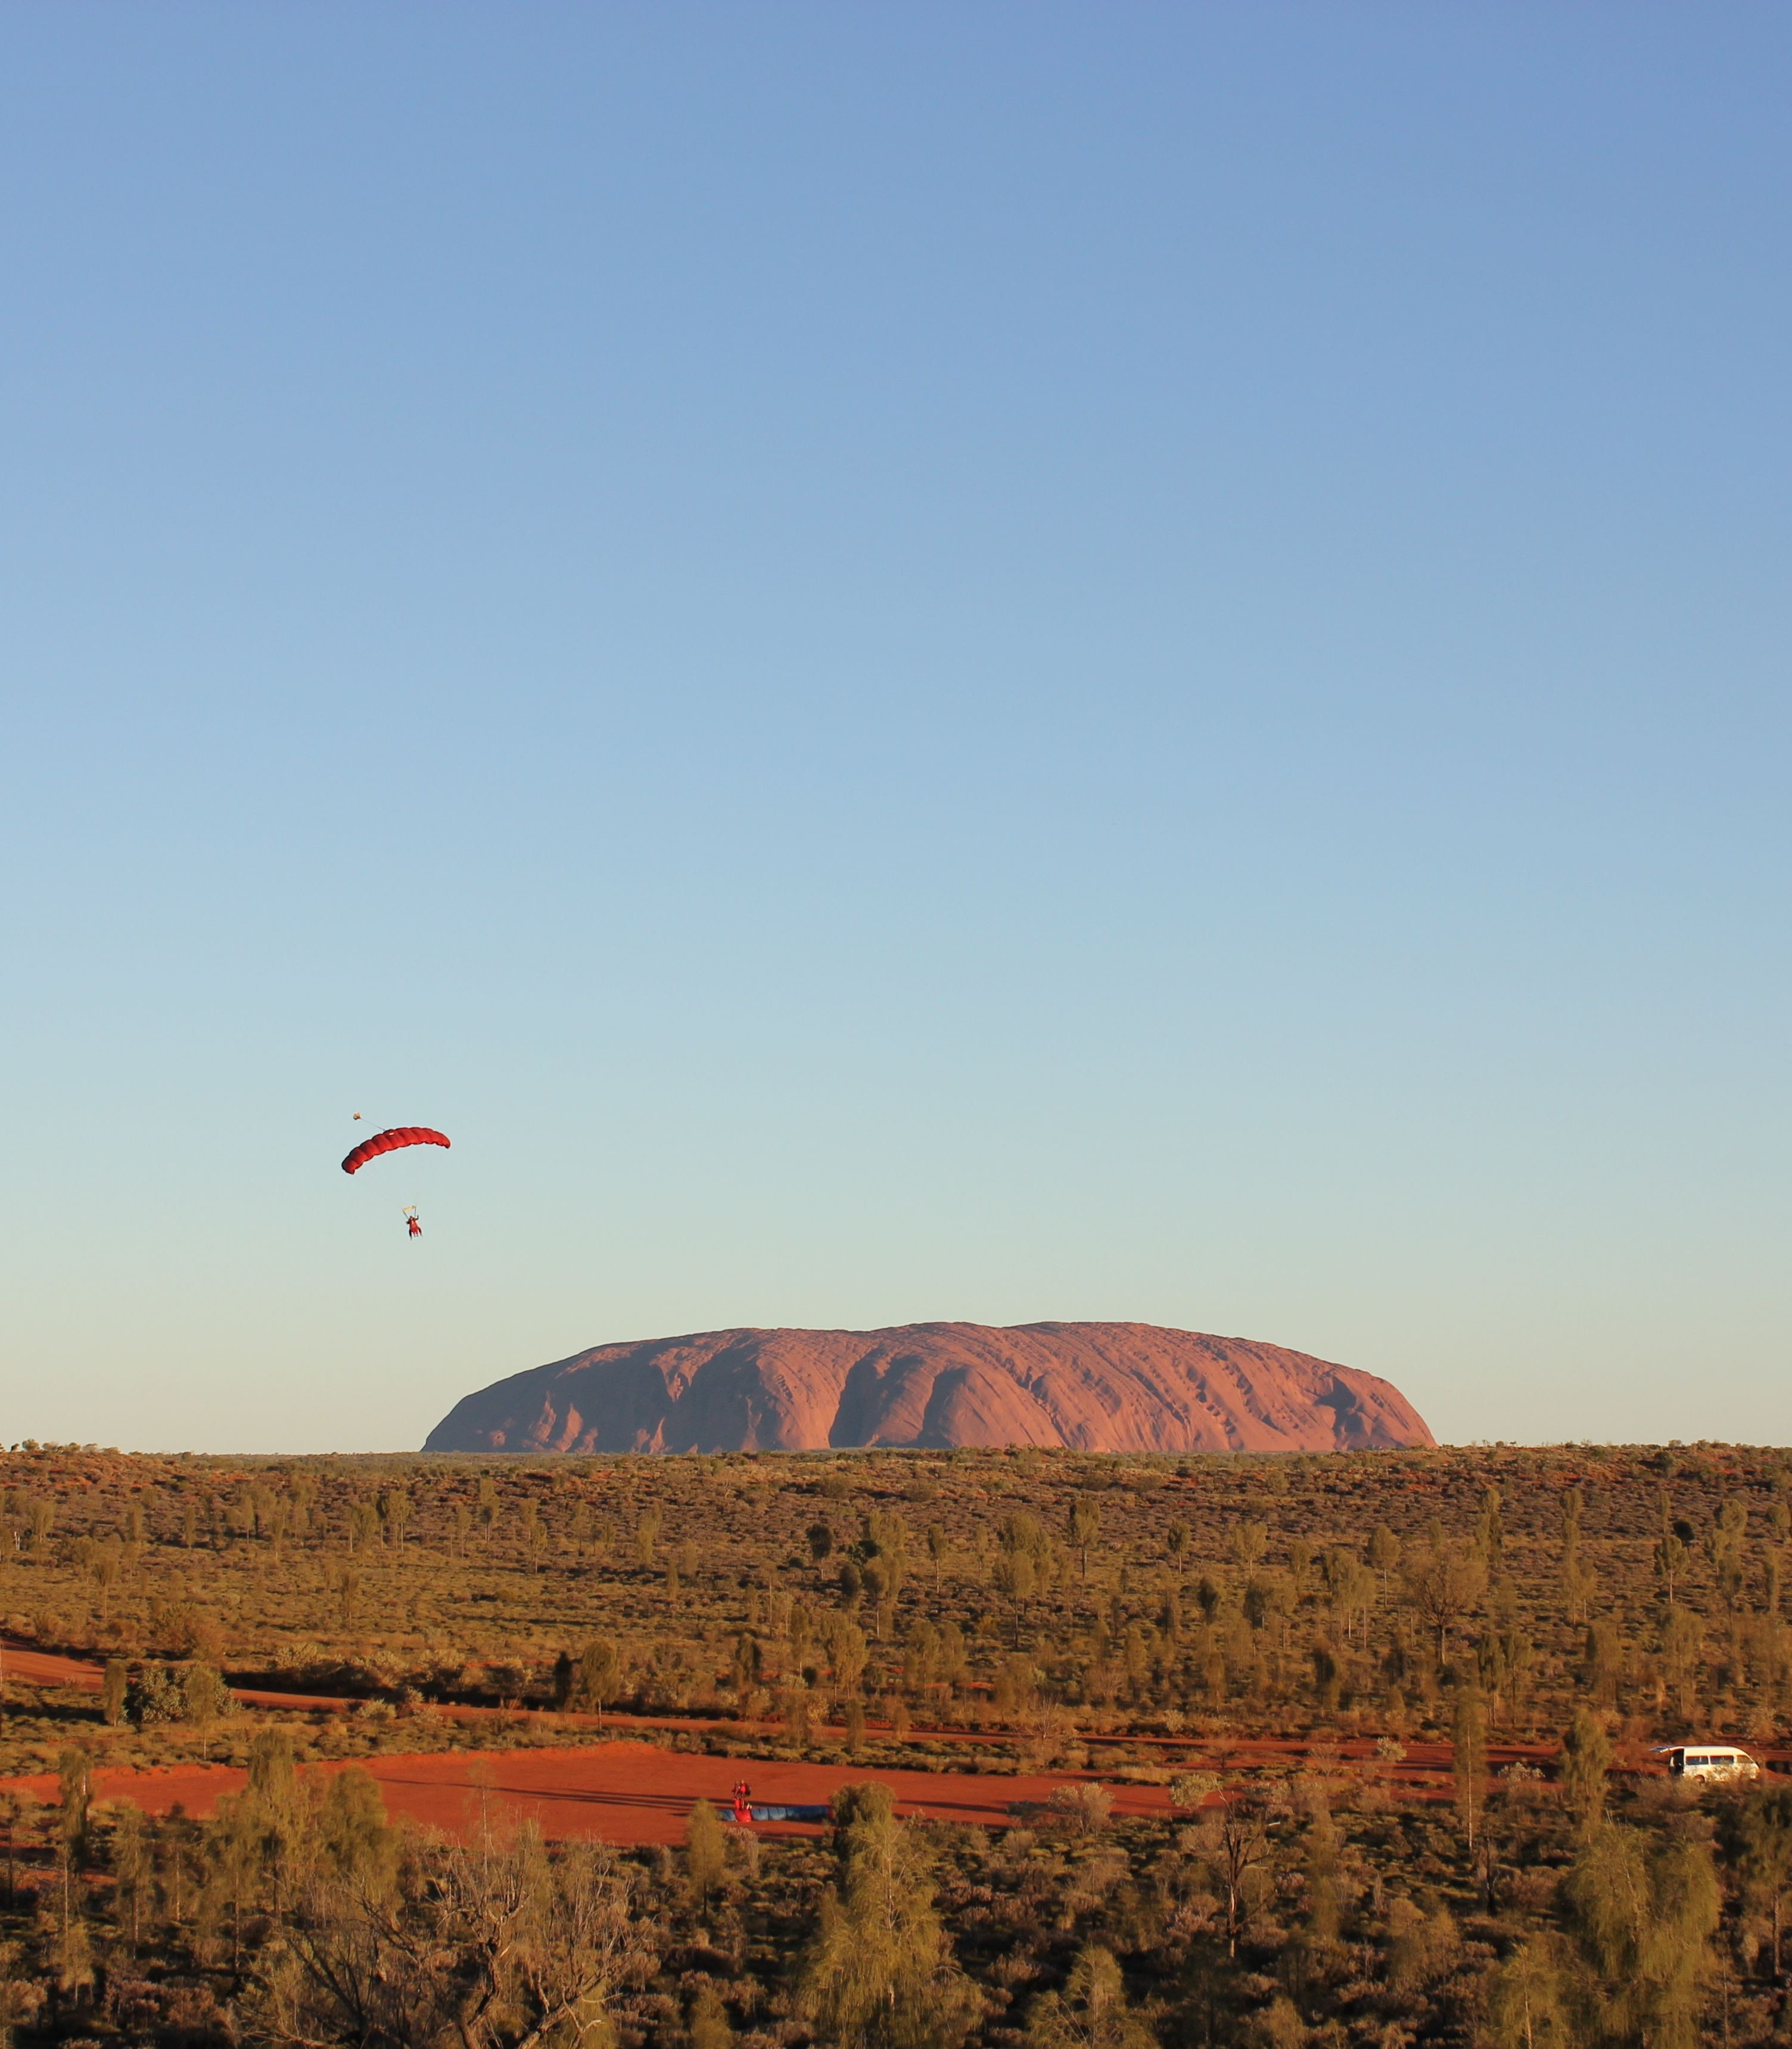 Parachute in the air front of Uluru